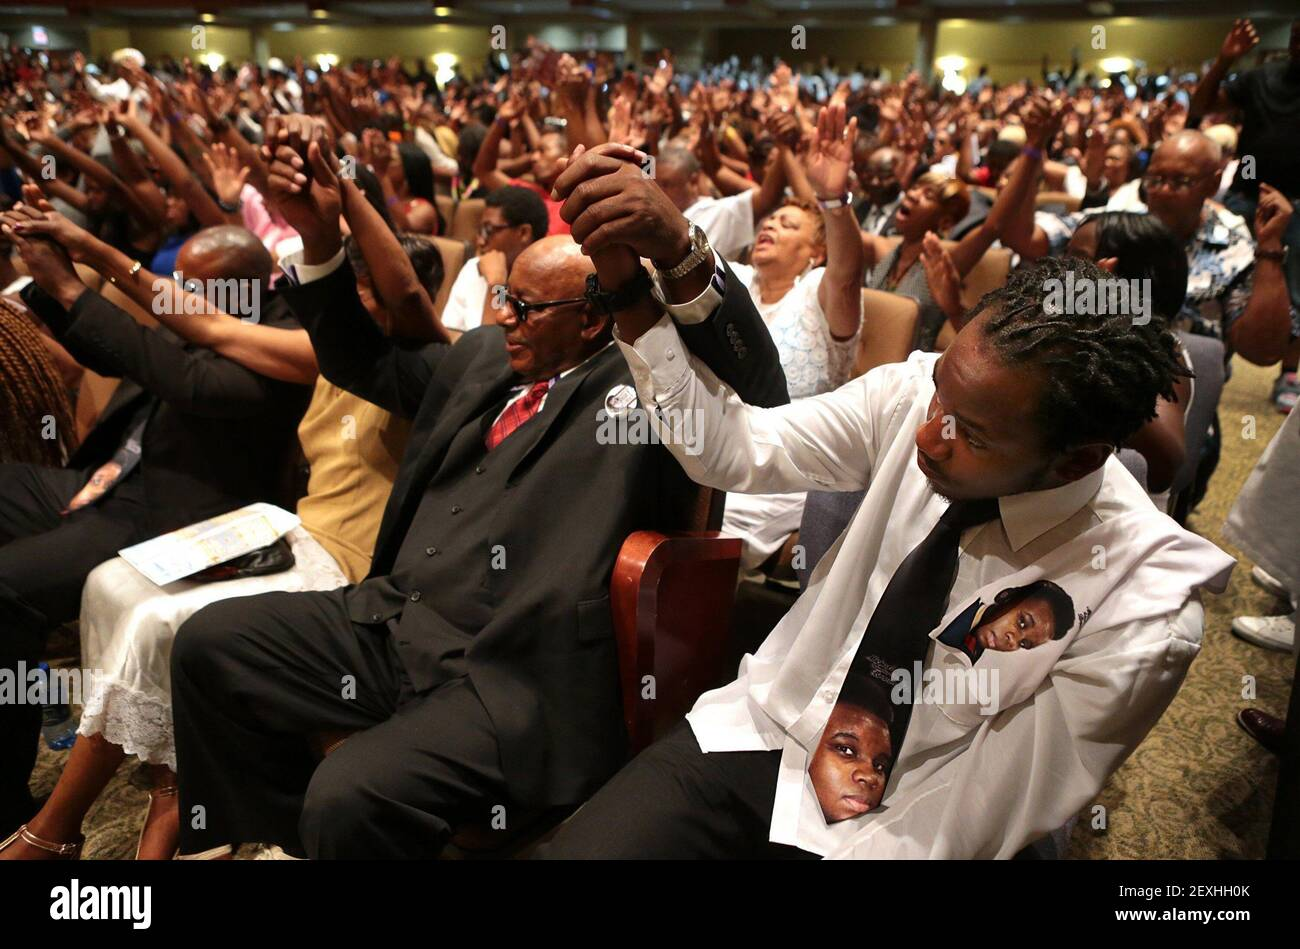 Leslie McSpadden, Jr., right, and his father Leslie McSpadden, Sr. raise their hands in prayer during the funeral for Michael Brown at Friendly Temple Missionary Baptist Church on Monday, Aug. 25, 2014. The men are the brother and father, respectively, of Michael Brown's mother Lesley McSpadden. (Photo by Robert Cohen/St. Louis Post-Dispatch/MCT/Sipa USA) Stock Photo